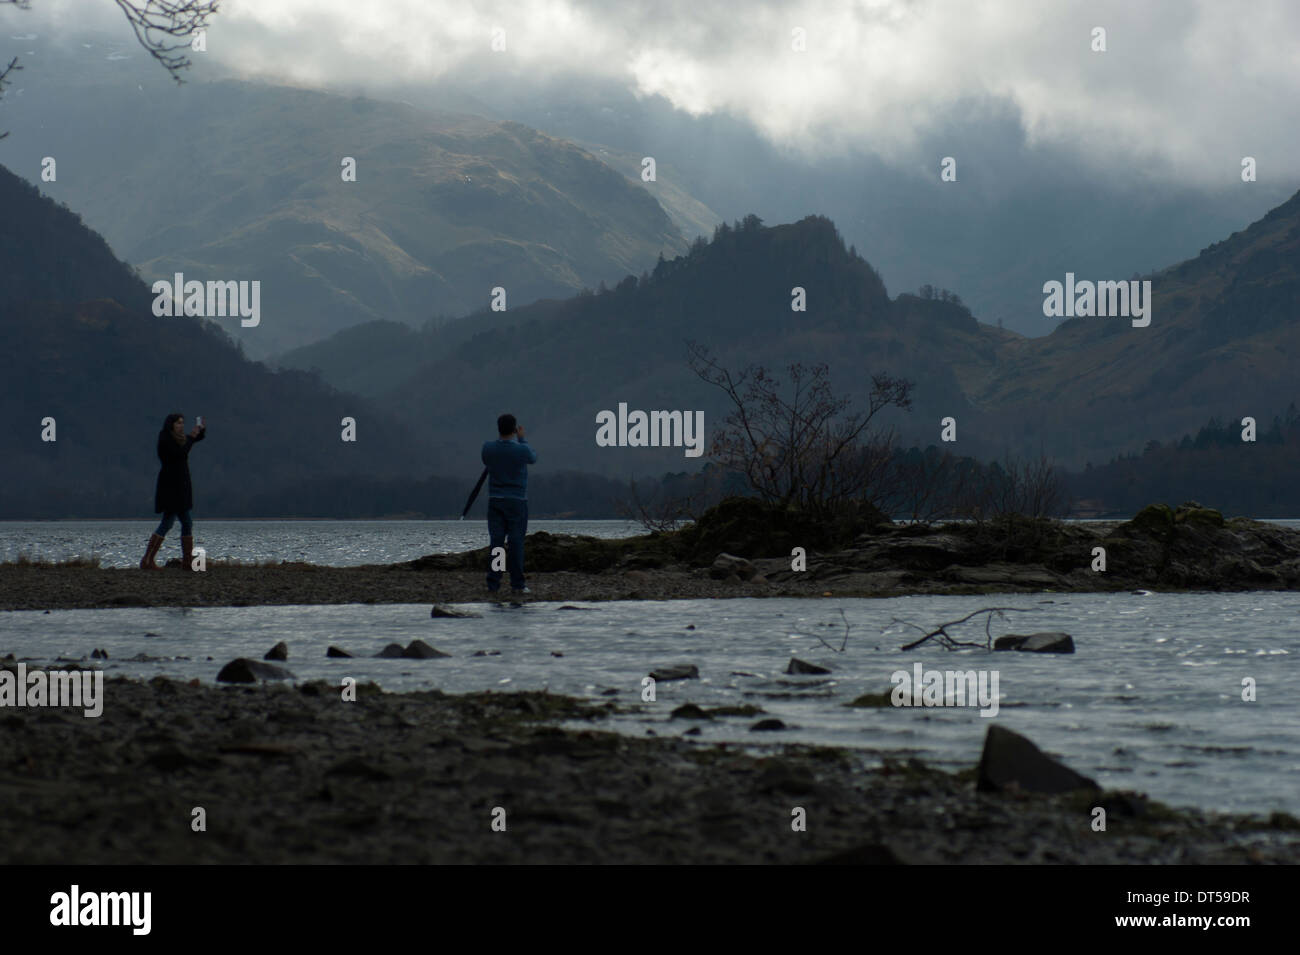 A couple taking pictures of each others and of the beautiful Borrowdale backgound in the Lake District. - Stock Image